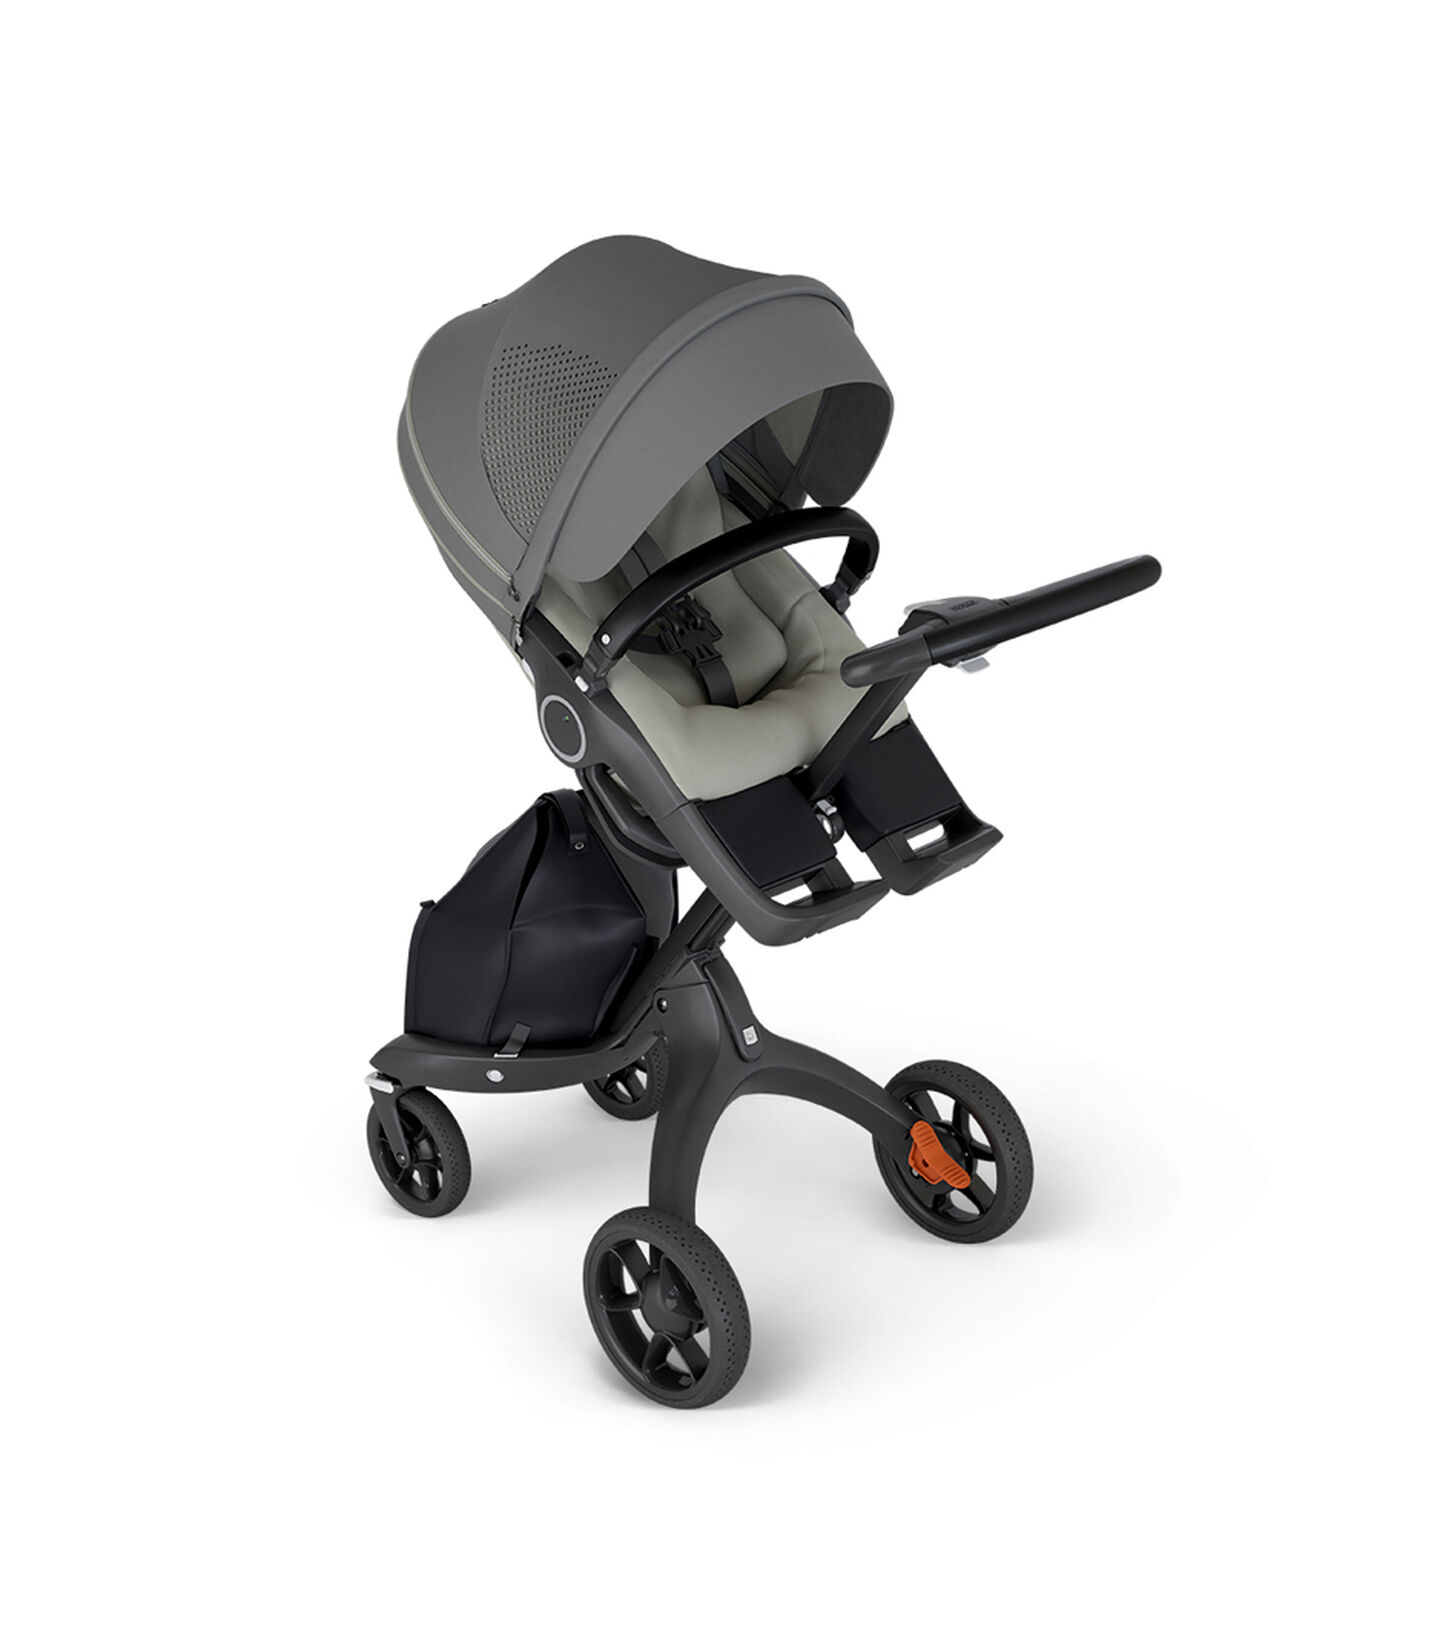 Stokke® Xplory® with Black Chassis and Leatherette Black handle. Stokke® Stroller Seat Athleisure Green in angled view.